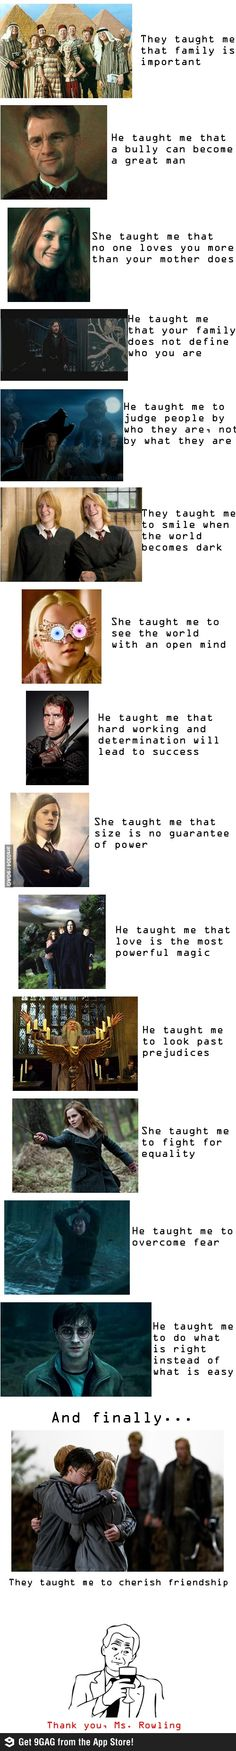 Life lessons from Harry Potter